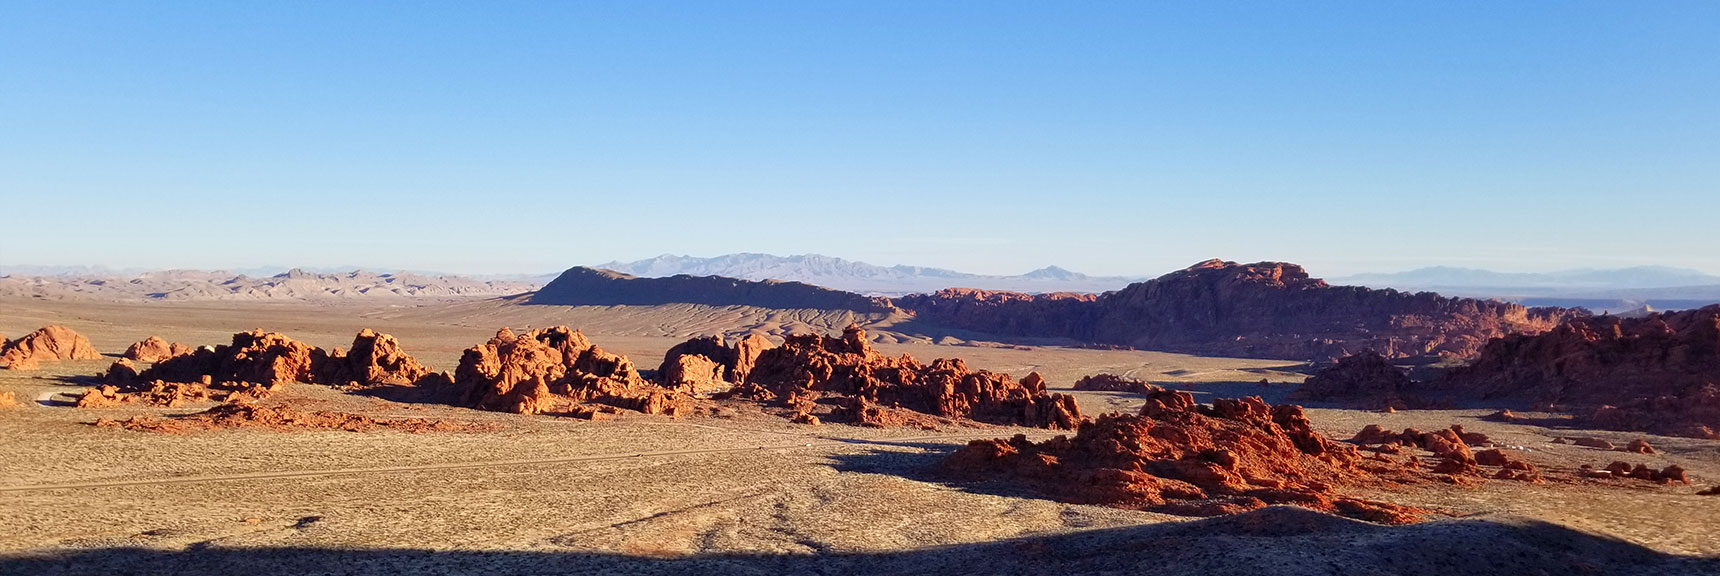 Valley of Fire State Park at Sunrise From the Muddy Mountains Wilderness, Nevada